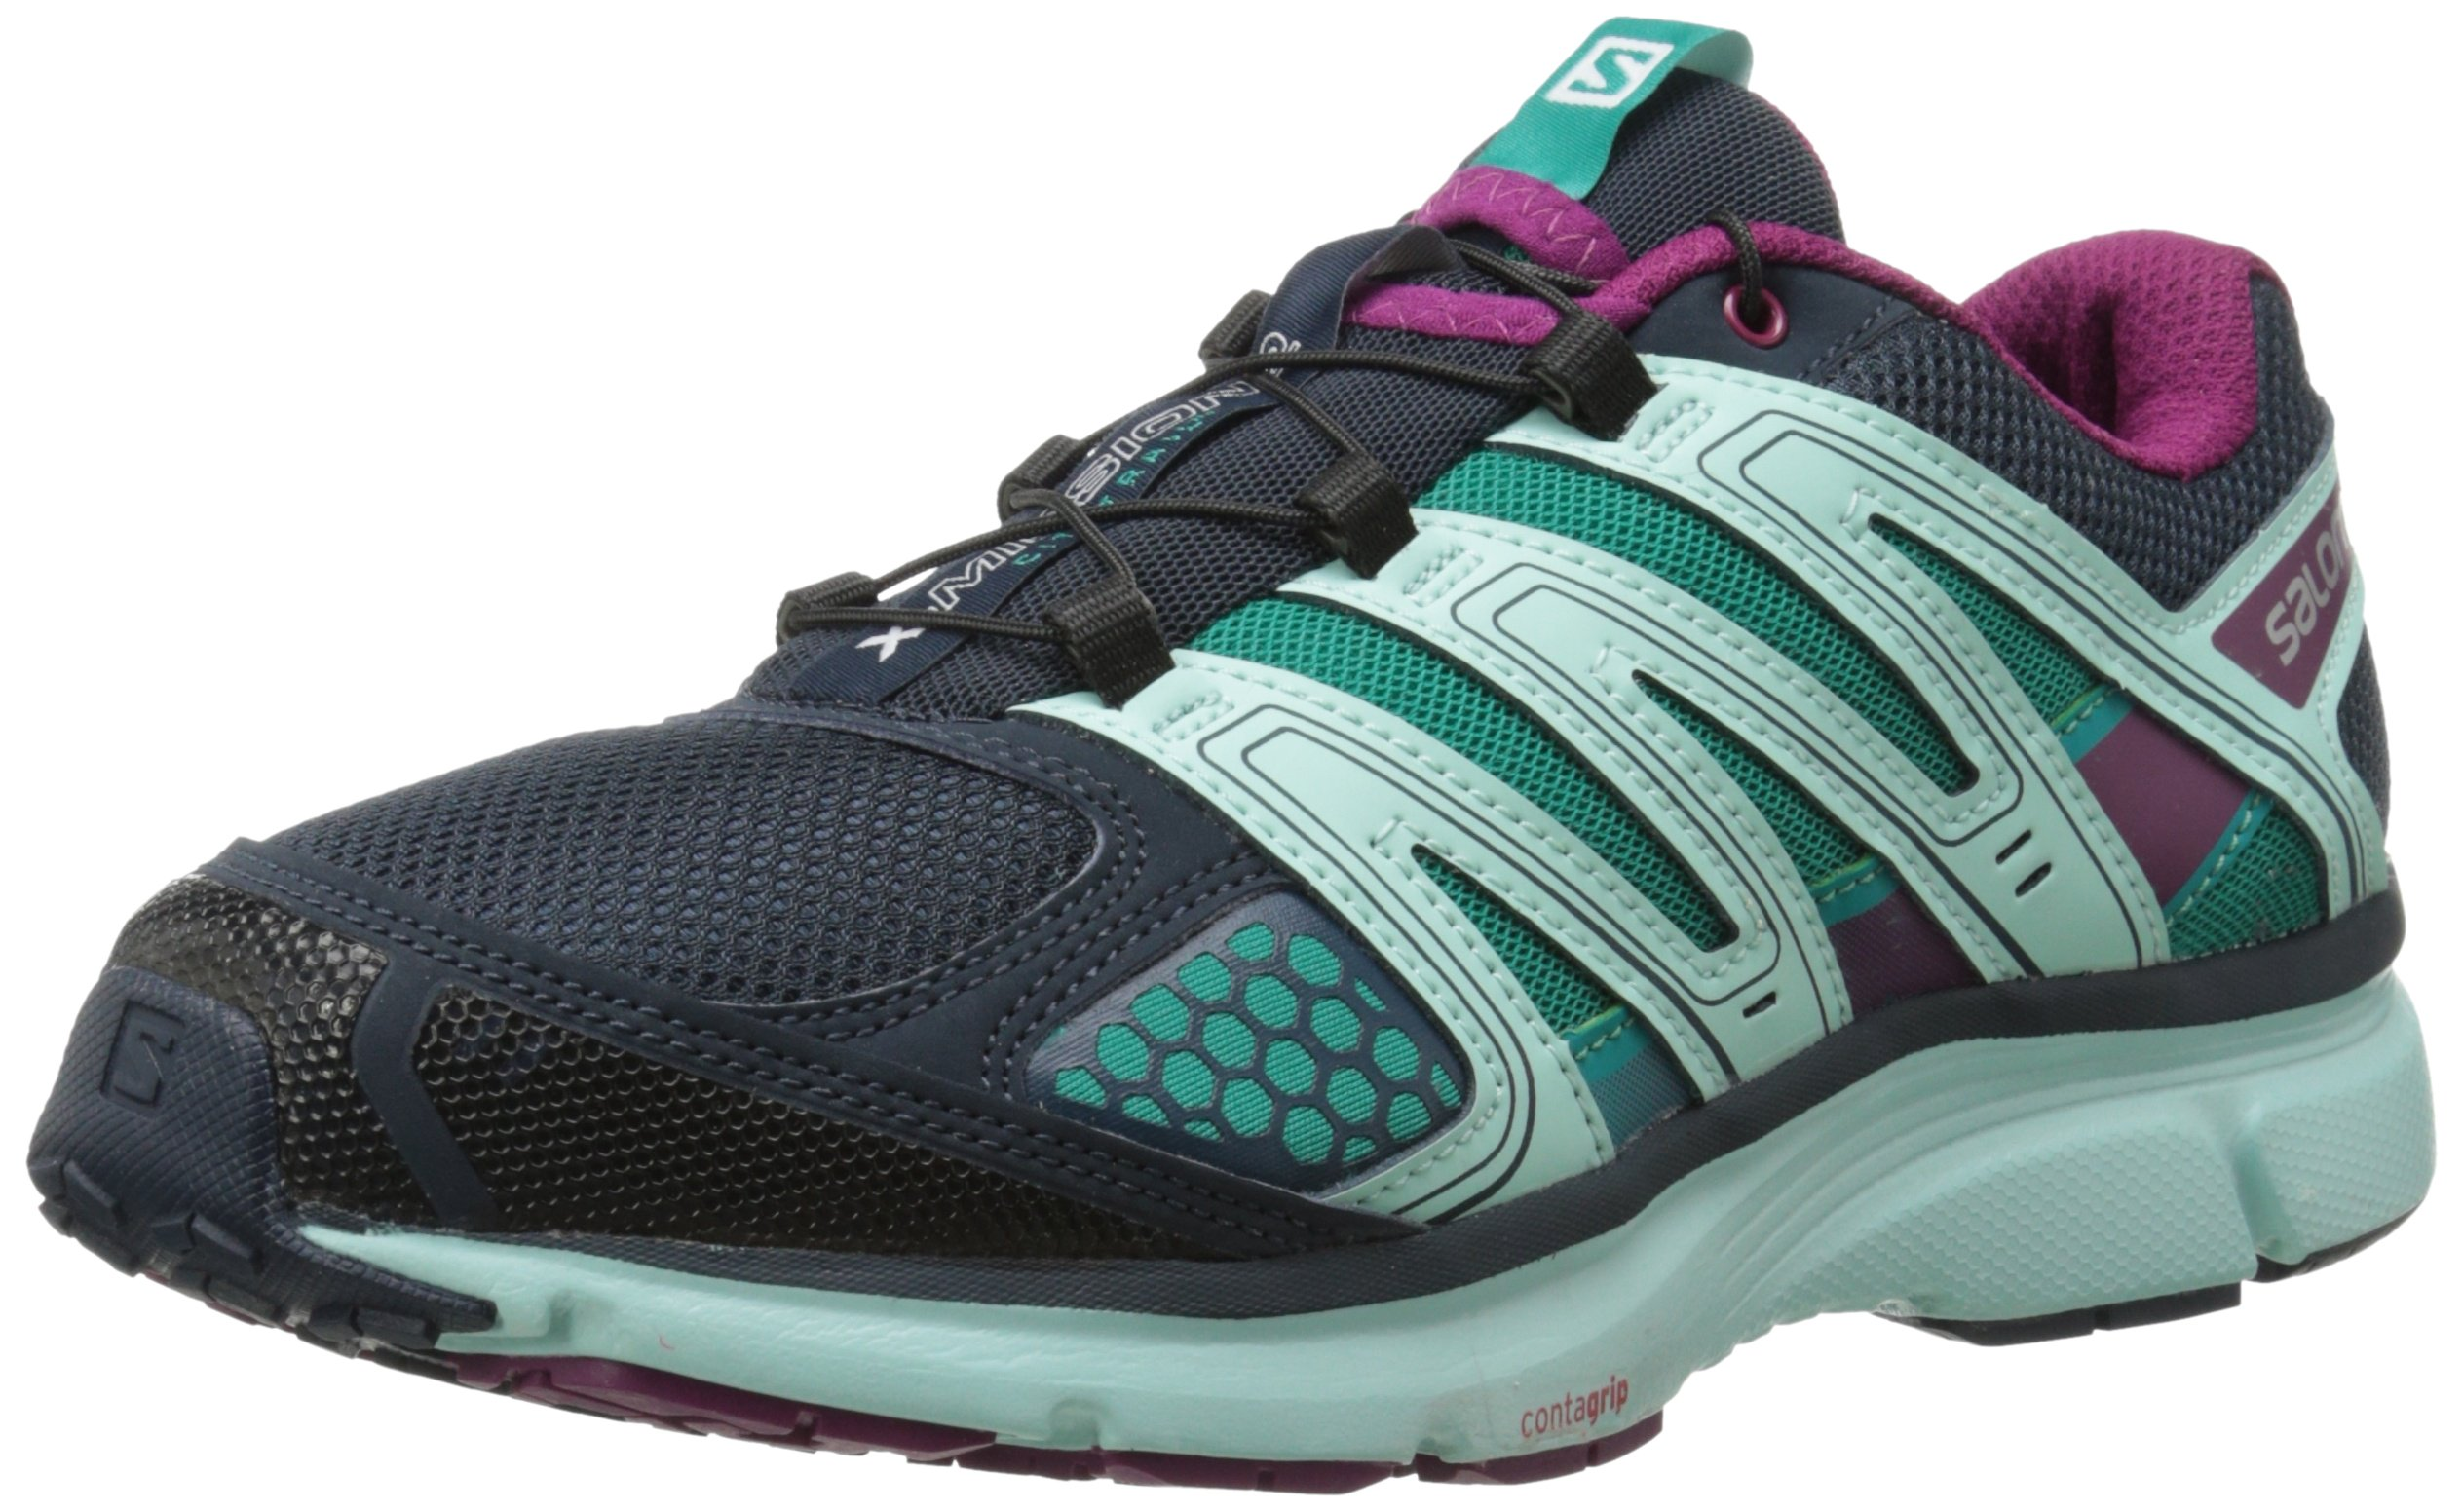 Salomon Women's X Mission 2 Running Sho